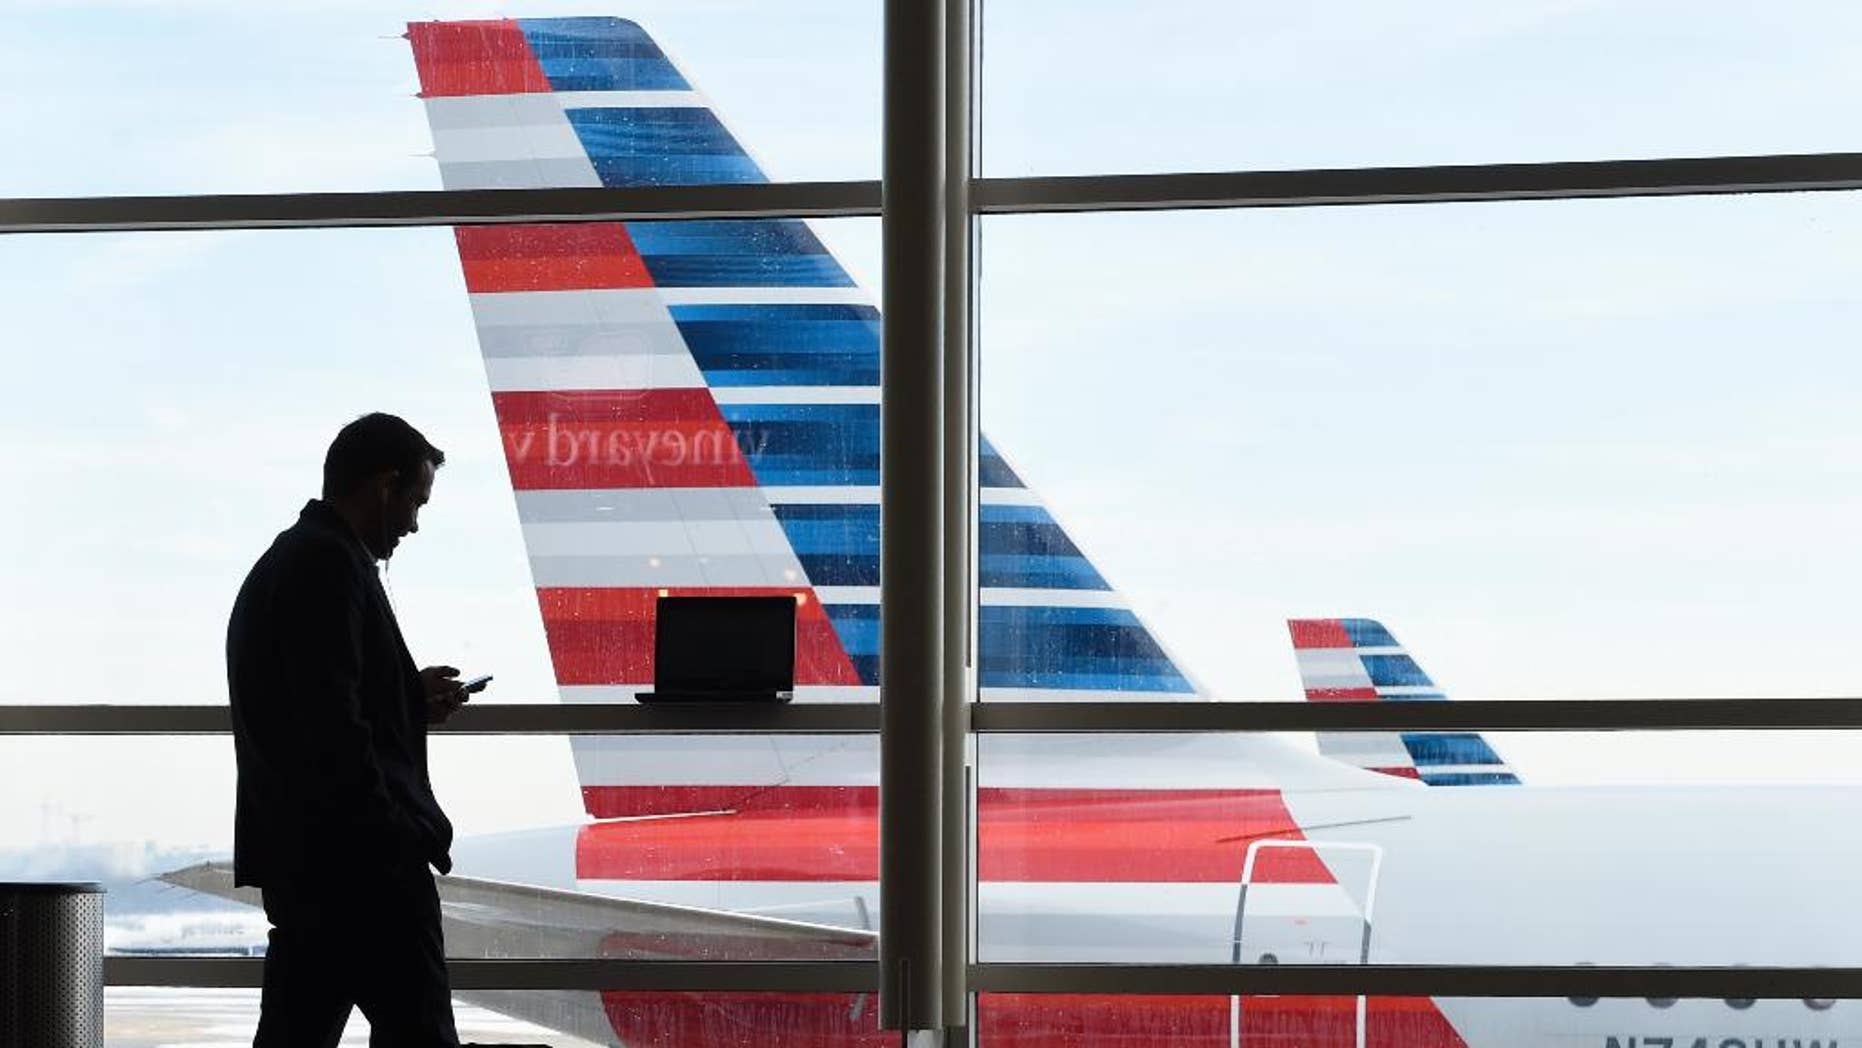 FILE - In this Jan. 25, 2016, file photo, a passenger talks on the phone as American Airlines jets sit parked at their gates at Washington's Ronald Reagan National Airport. American Airlines has agreed to pay $200 million for a stake in China Southern Airlines, the biggest of China's three major state-owned carriers, in a bid for a bigger share of the country's growing travel market. (AP Photo/Susan Walsh, File)